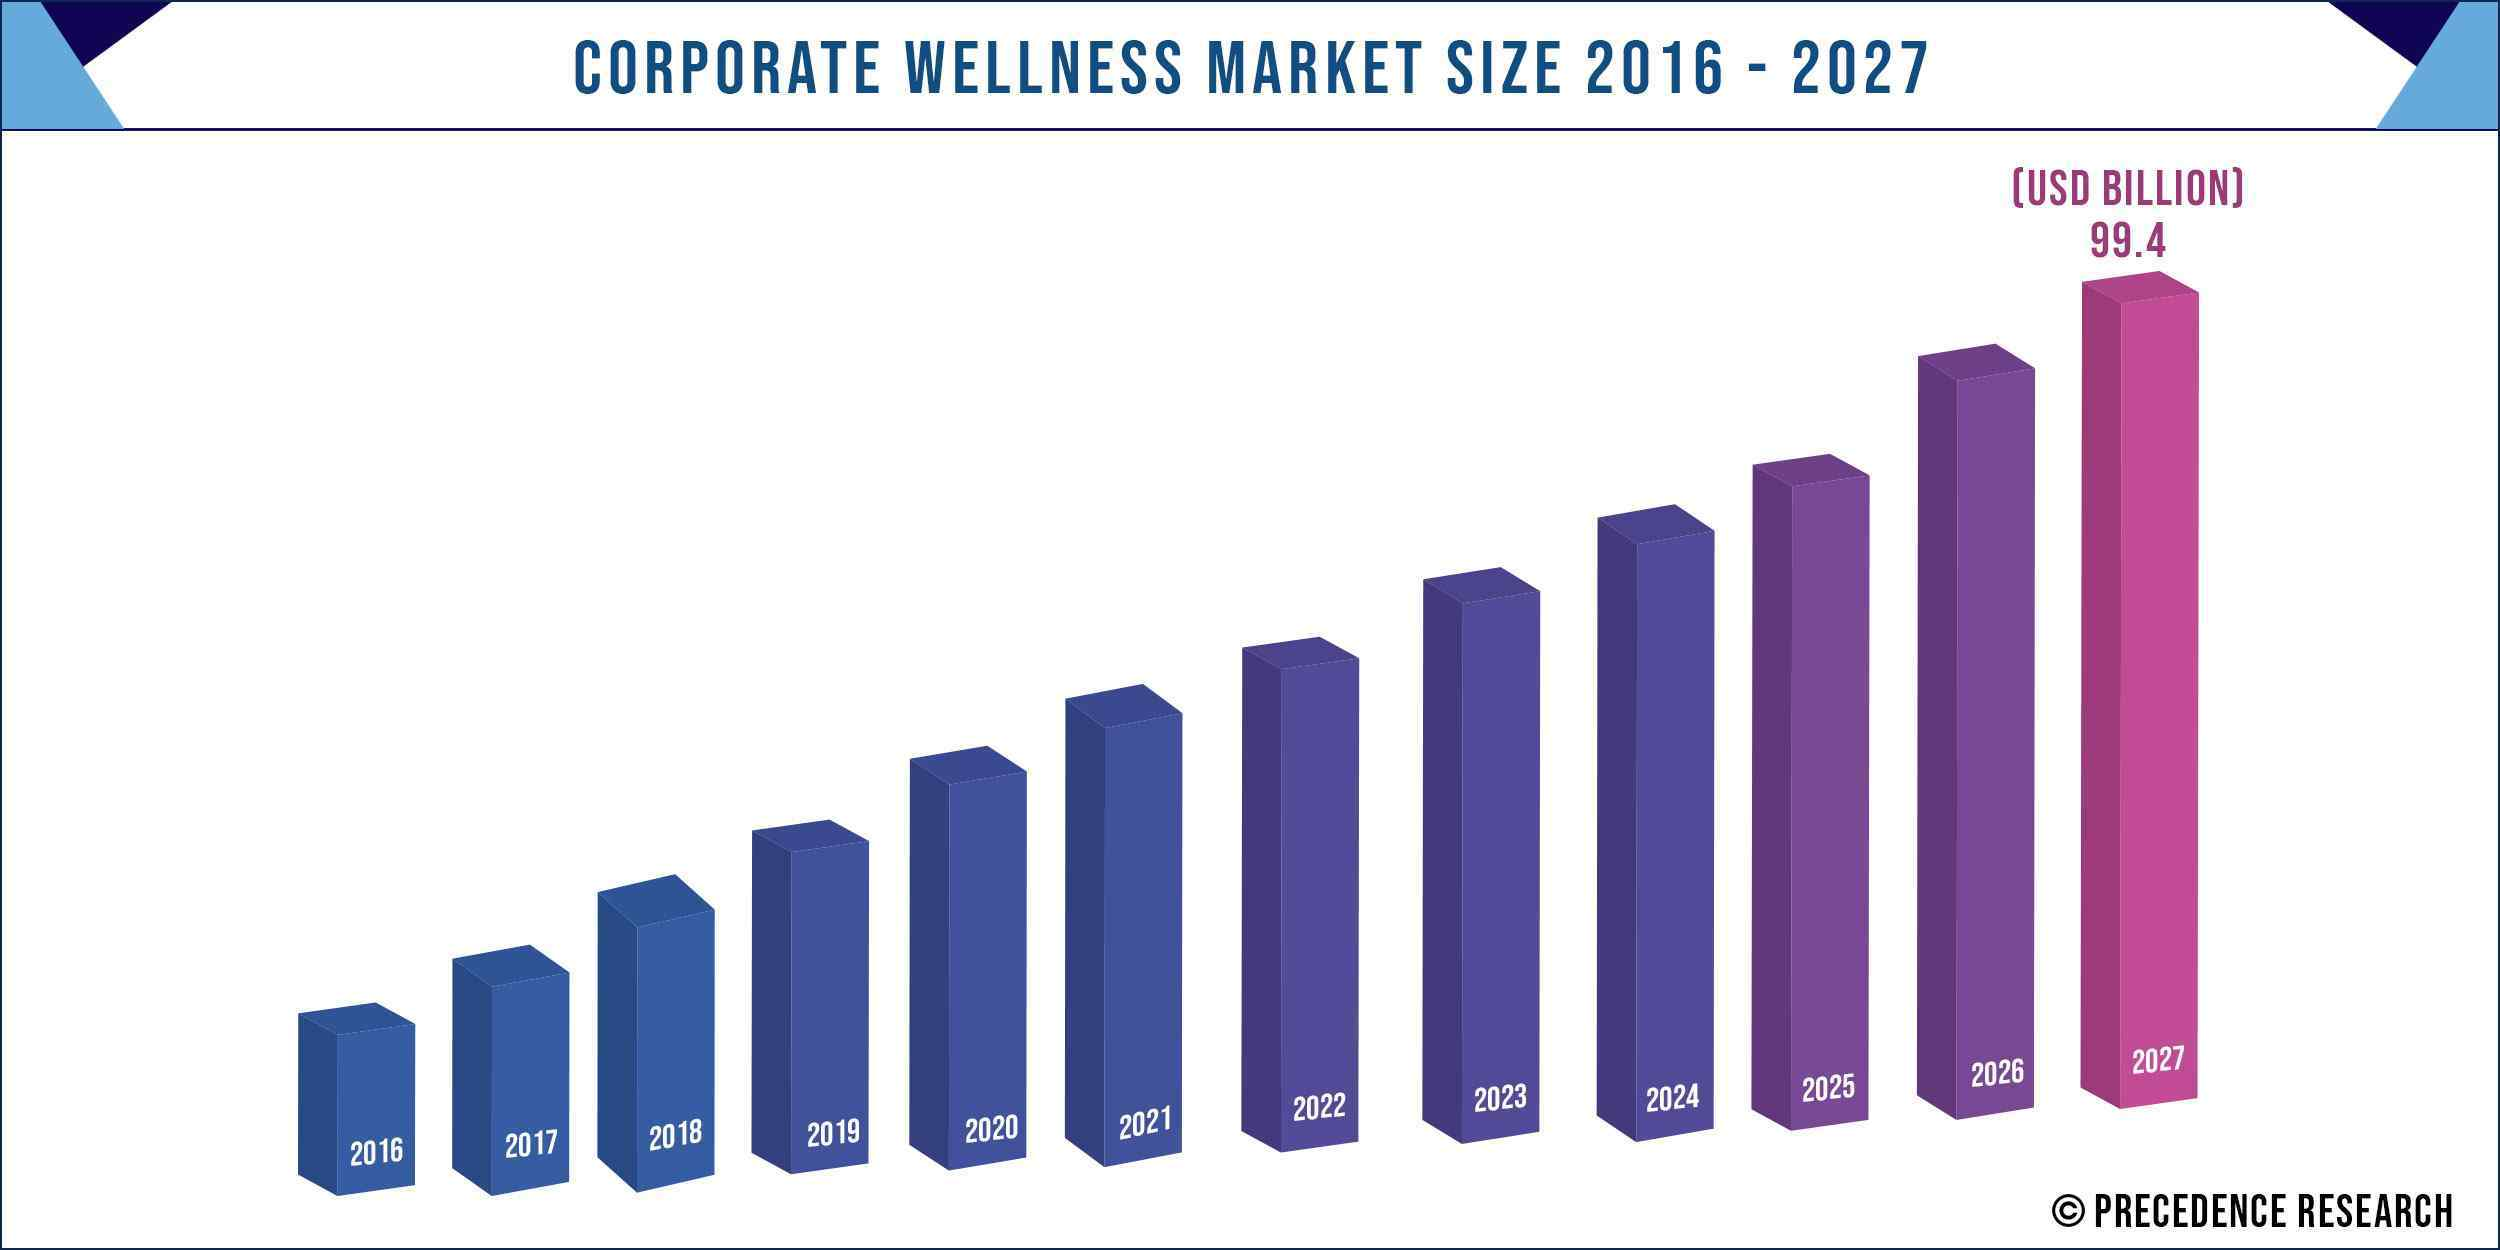 Corporate Wellness Market Size 2016 to 2027